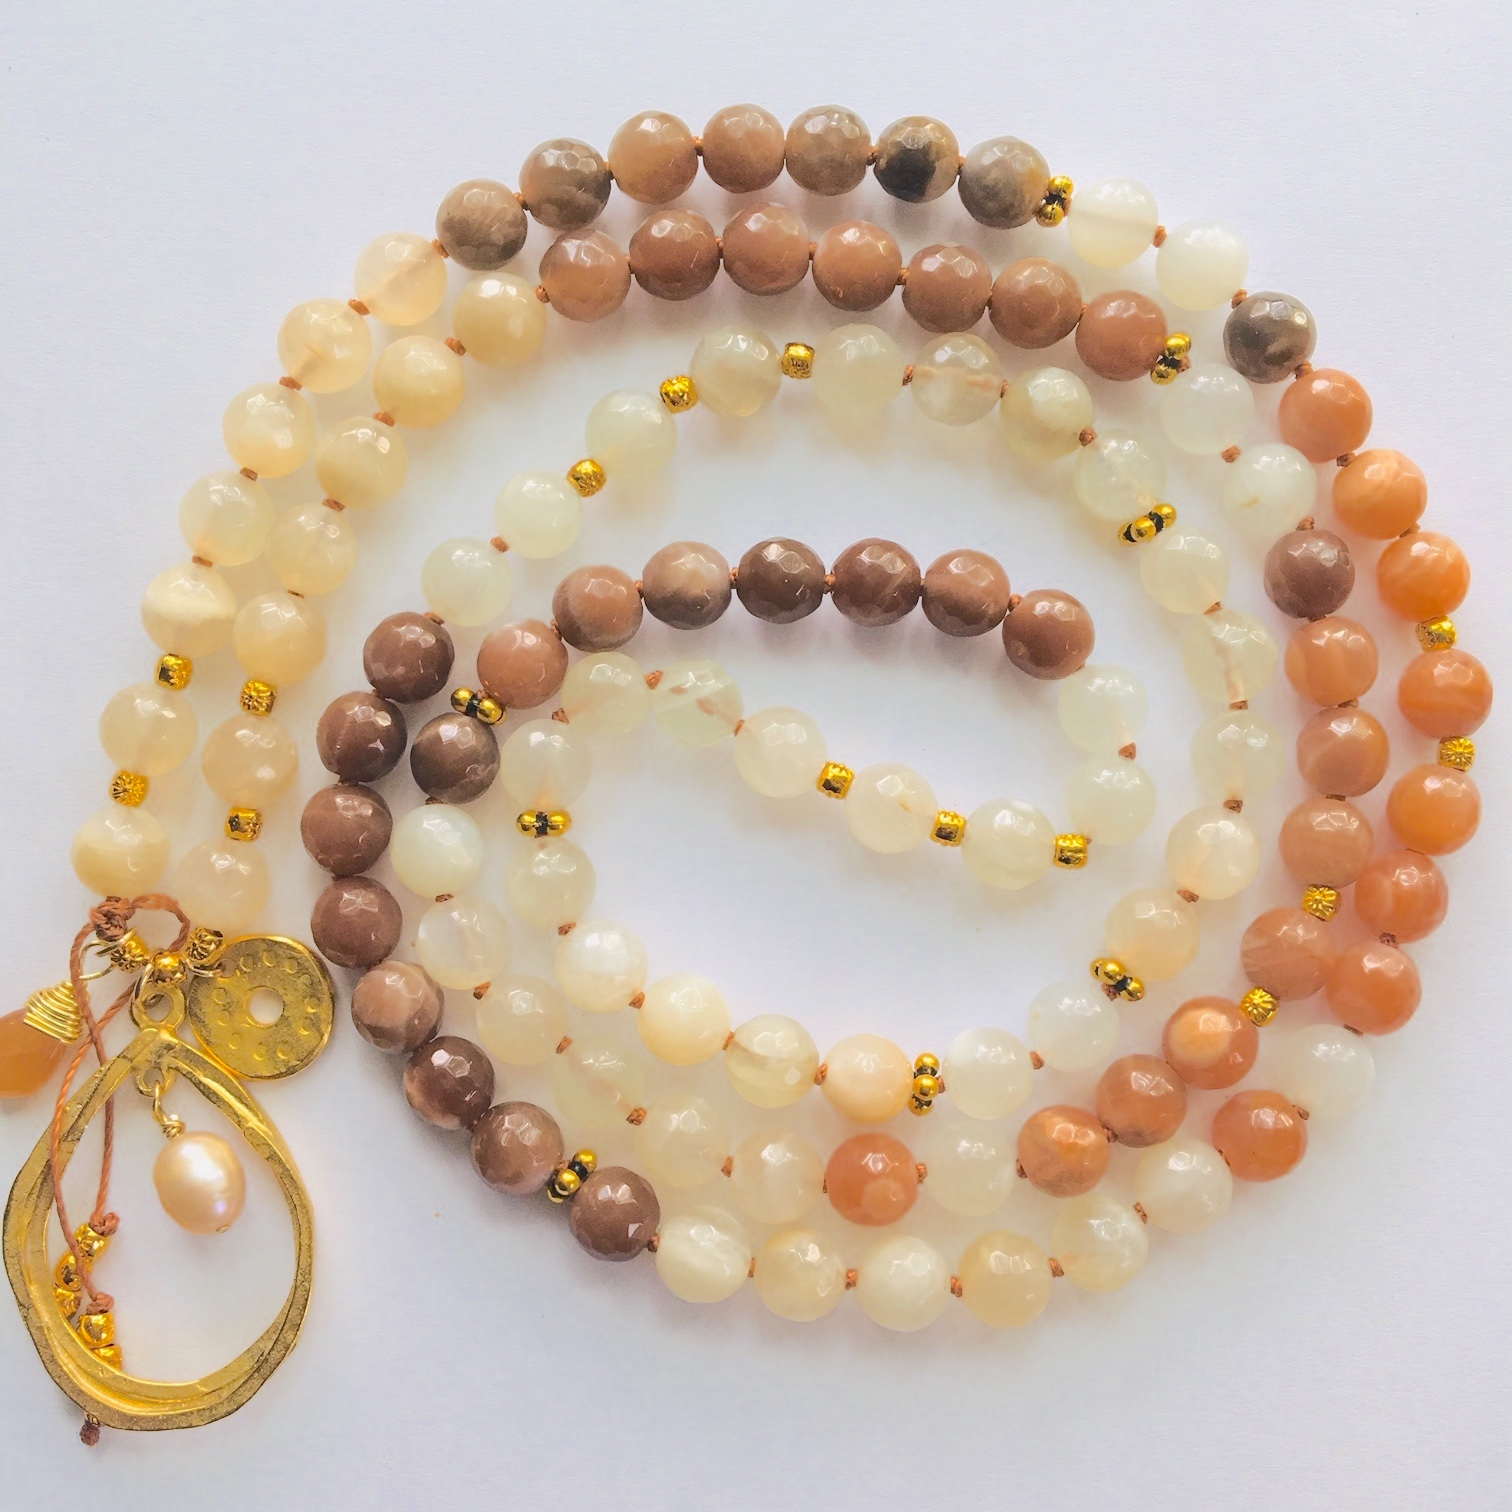 Sweetness of Life Mala   Shades of Moonstone. Moonstone assists the hearts as it stimulates the mind, soothing anxiety. The energy of Moonstone is an emotional support for sensitive people and is thought to help enhance one's emotional vision bringing greater creative abilities and freedom of expression. It's also known to help with absorption of essential vitamins and minerals.